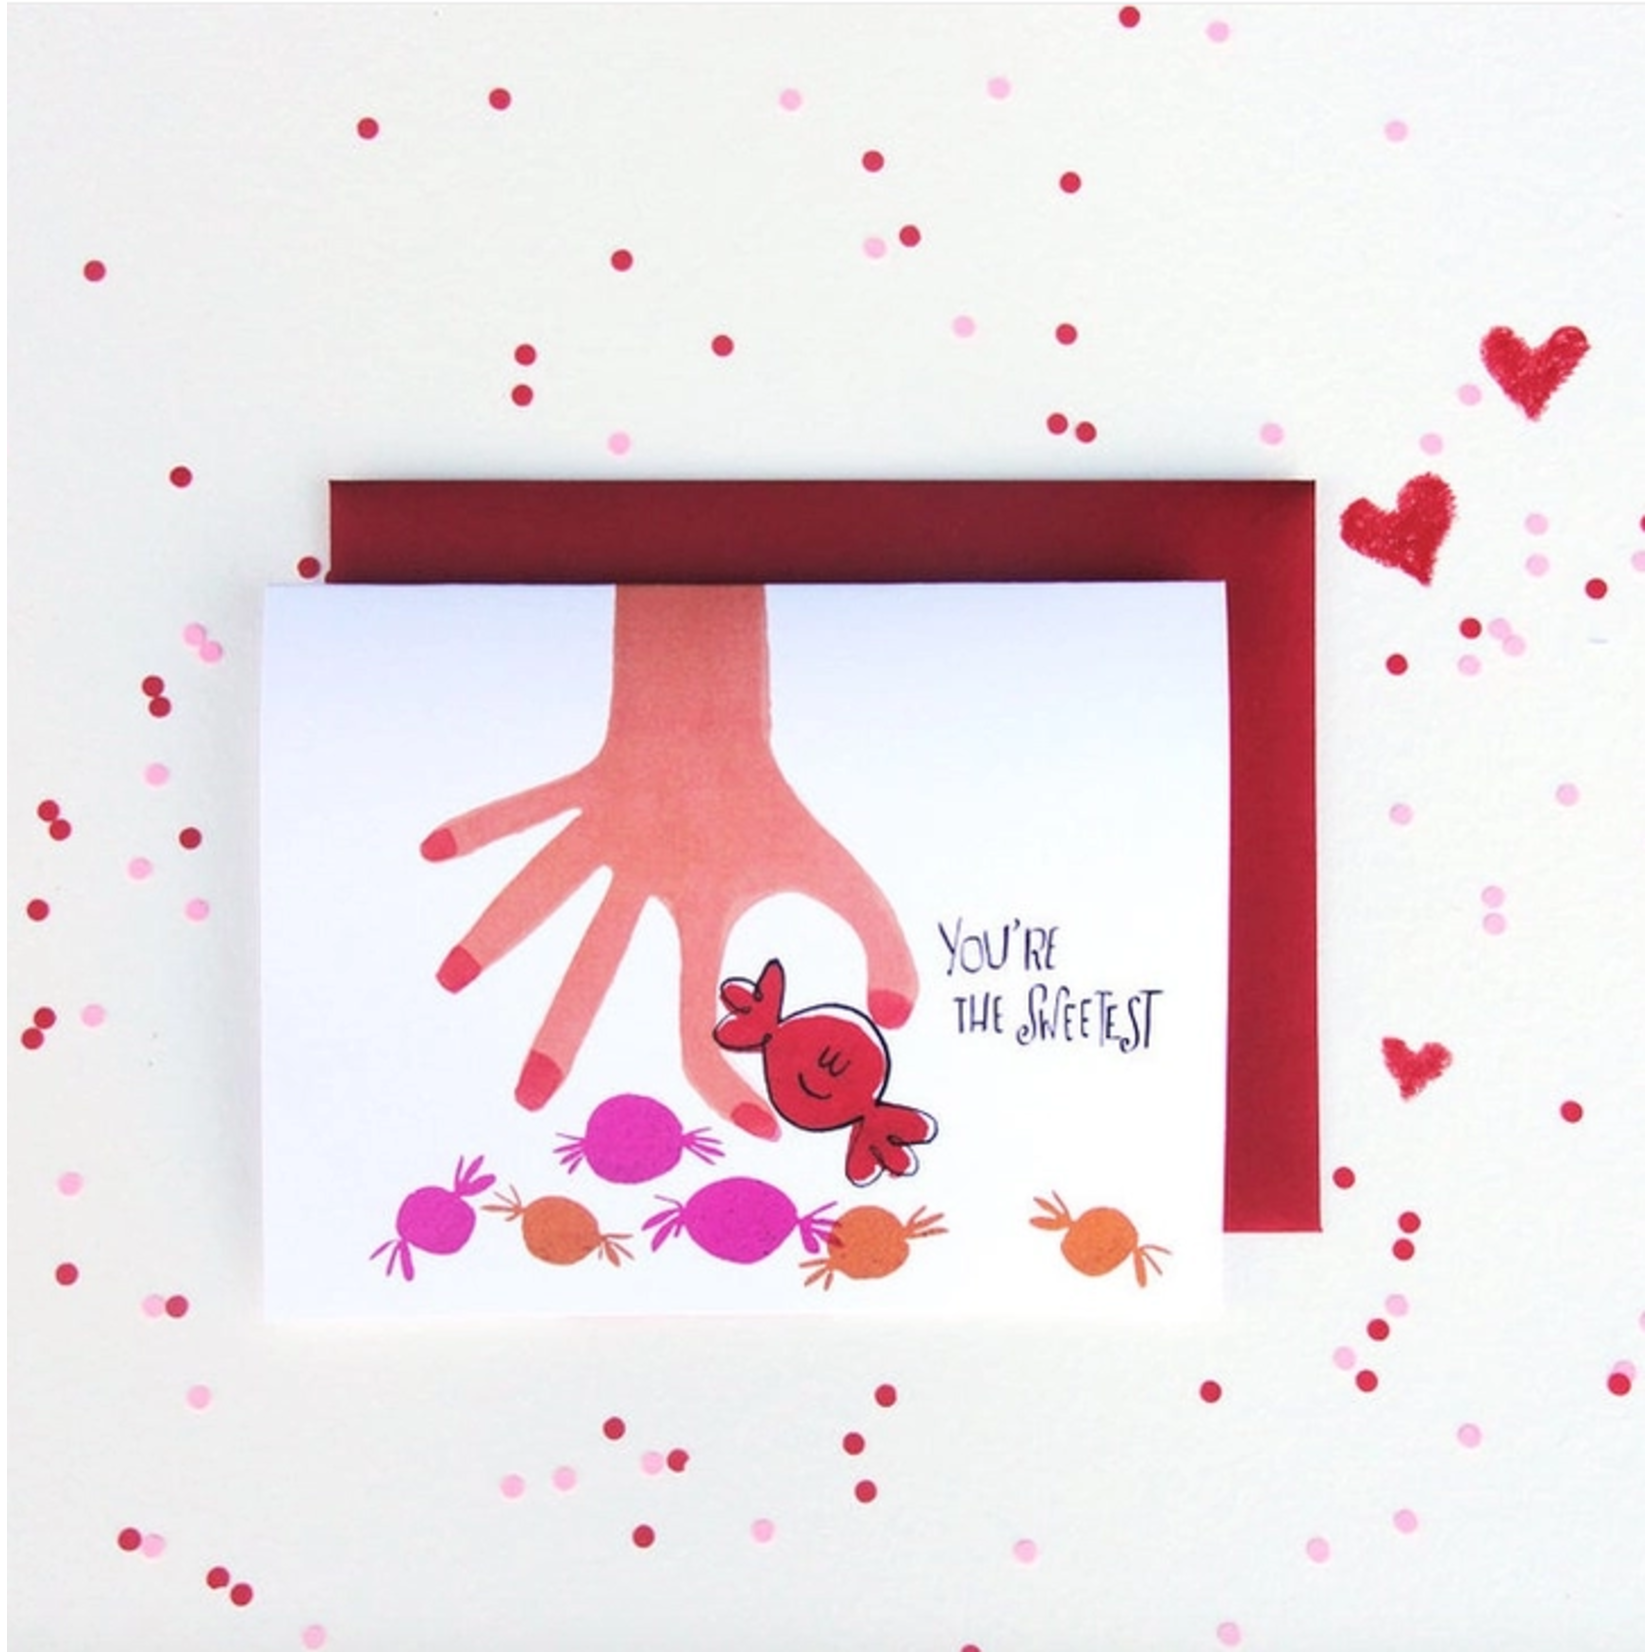 An Open Sketchbook You're the Sweetest Greeting Card